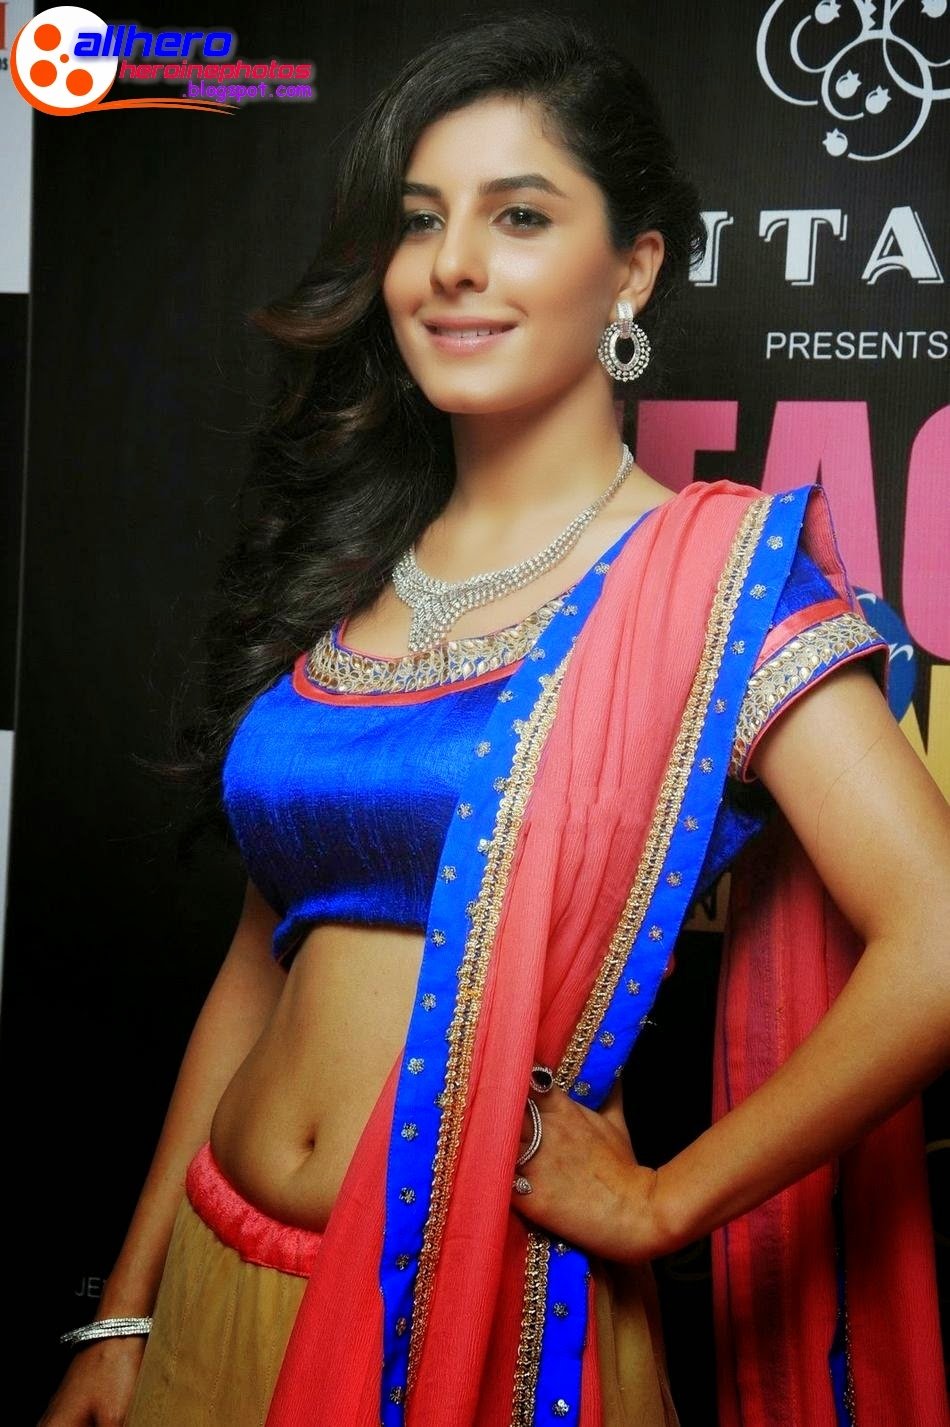 Isha Talwar Hot Photos, Isha Talwar updates,Isha Talwar Latest Hot Photo Shoot Stills, Isha Talwar Hot, Hot Isha Talwar,Isha Talwar gossips ,  Isha Talwar New Pics, Isha Talwar Cute Stills, Photos, Isha Talwar in Churidar, Isha Talwar in Langa Voni, Isha Talwar in Saree, Isha Talwar in Bikini , Isha Talwar Bikini Hot Pics, Isha Talwar Latest Hot Pics, Isha Talwar Hot Images, Isha Talwar new photos, Isha Talwar Sexy Pics